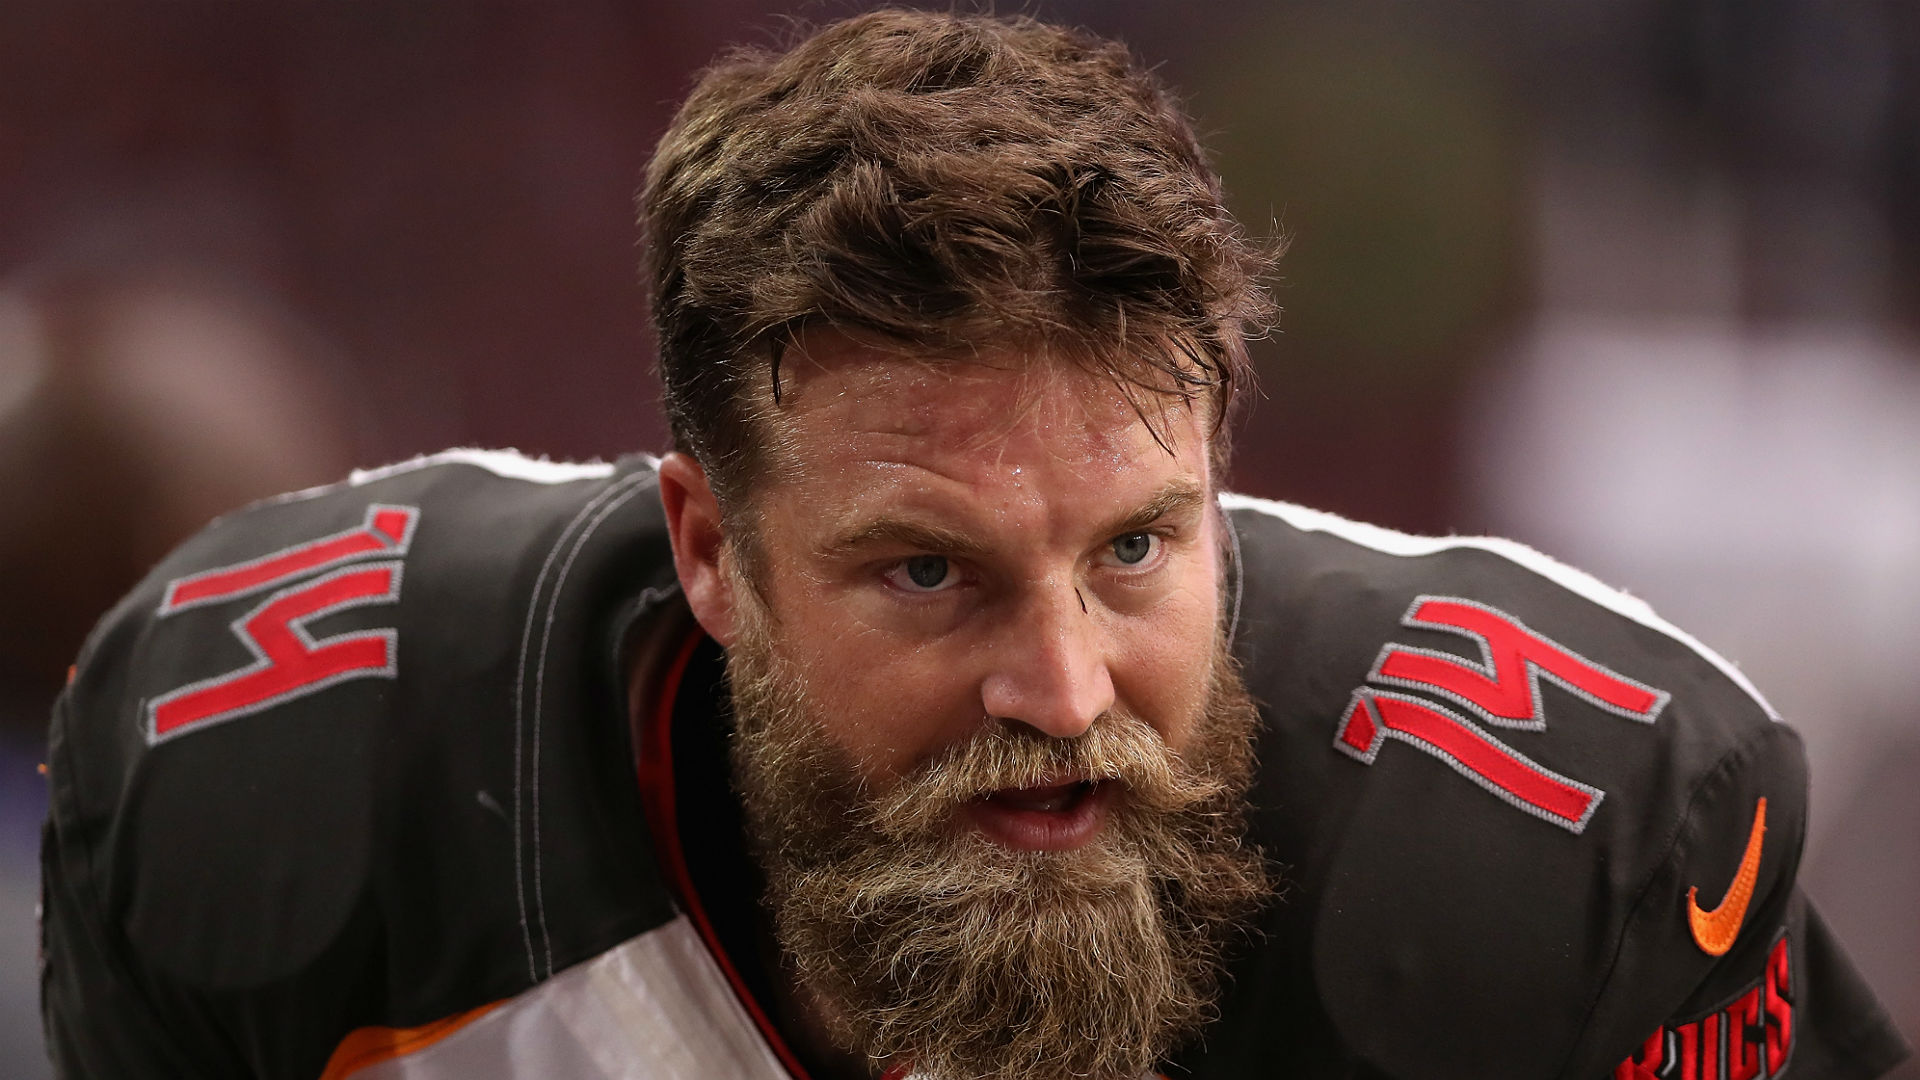 Ryan Fitzpatrick Blames Birthday Cake for the Offseason Weight He's Put On